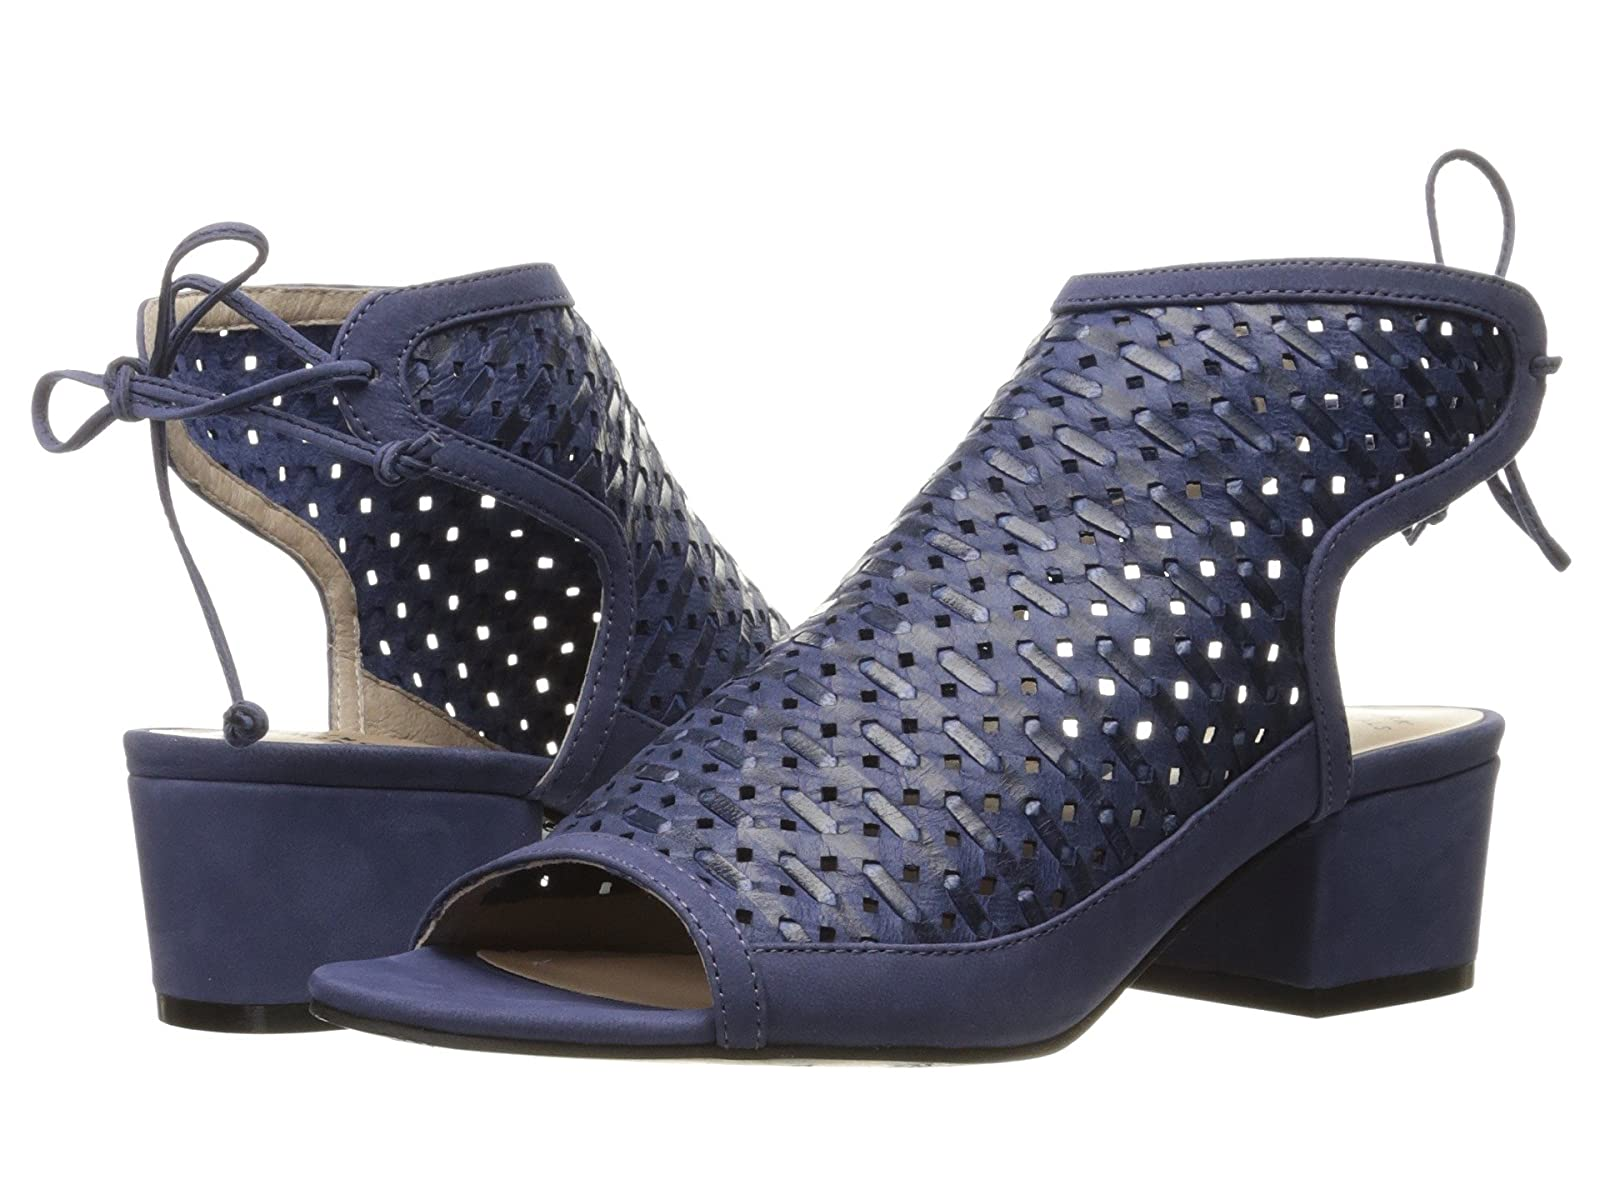 Nina VanceCheap and distinctive eye-catching shoes